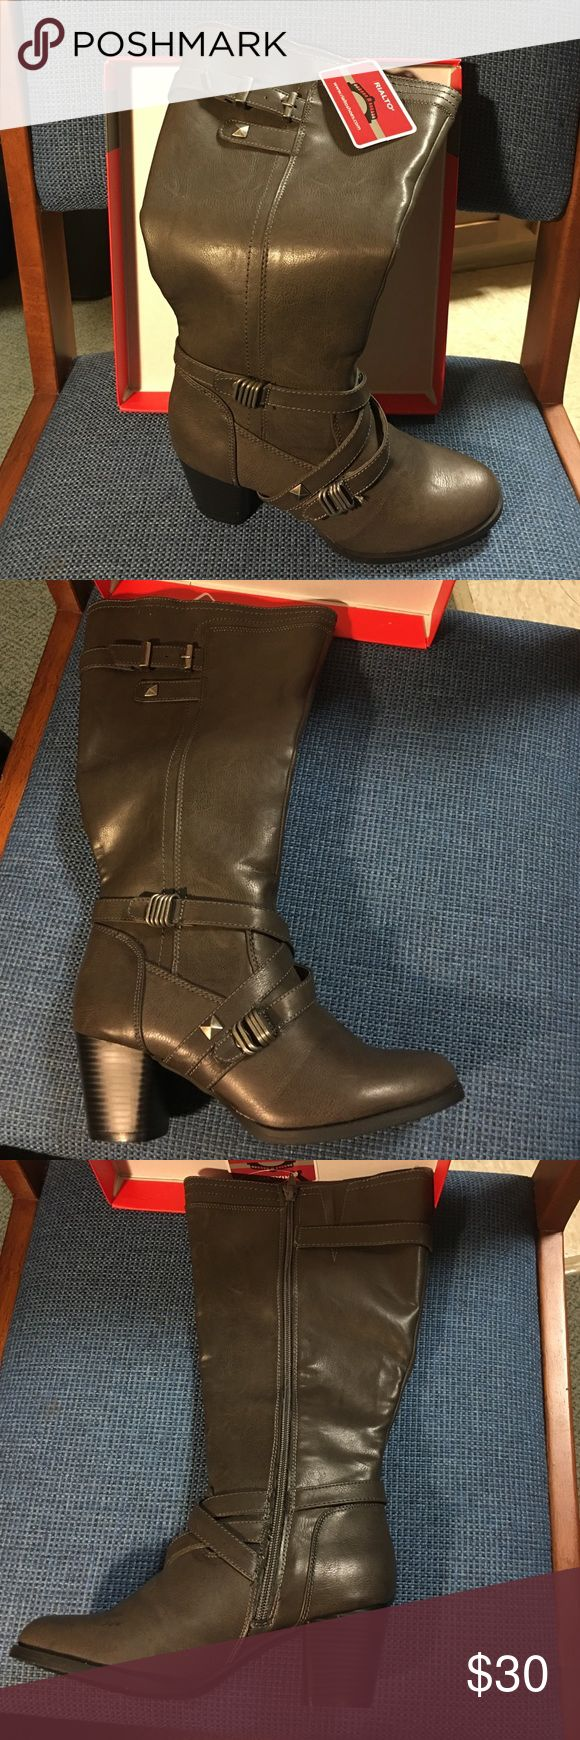 Rialto Wild Calf Claudette Ash Boots 7.5M This is brand new pair of Rialto Claudette boots size 7.5. Comes with tag and original box. Rialto Shoes Heeled Boots